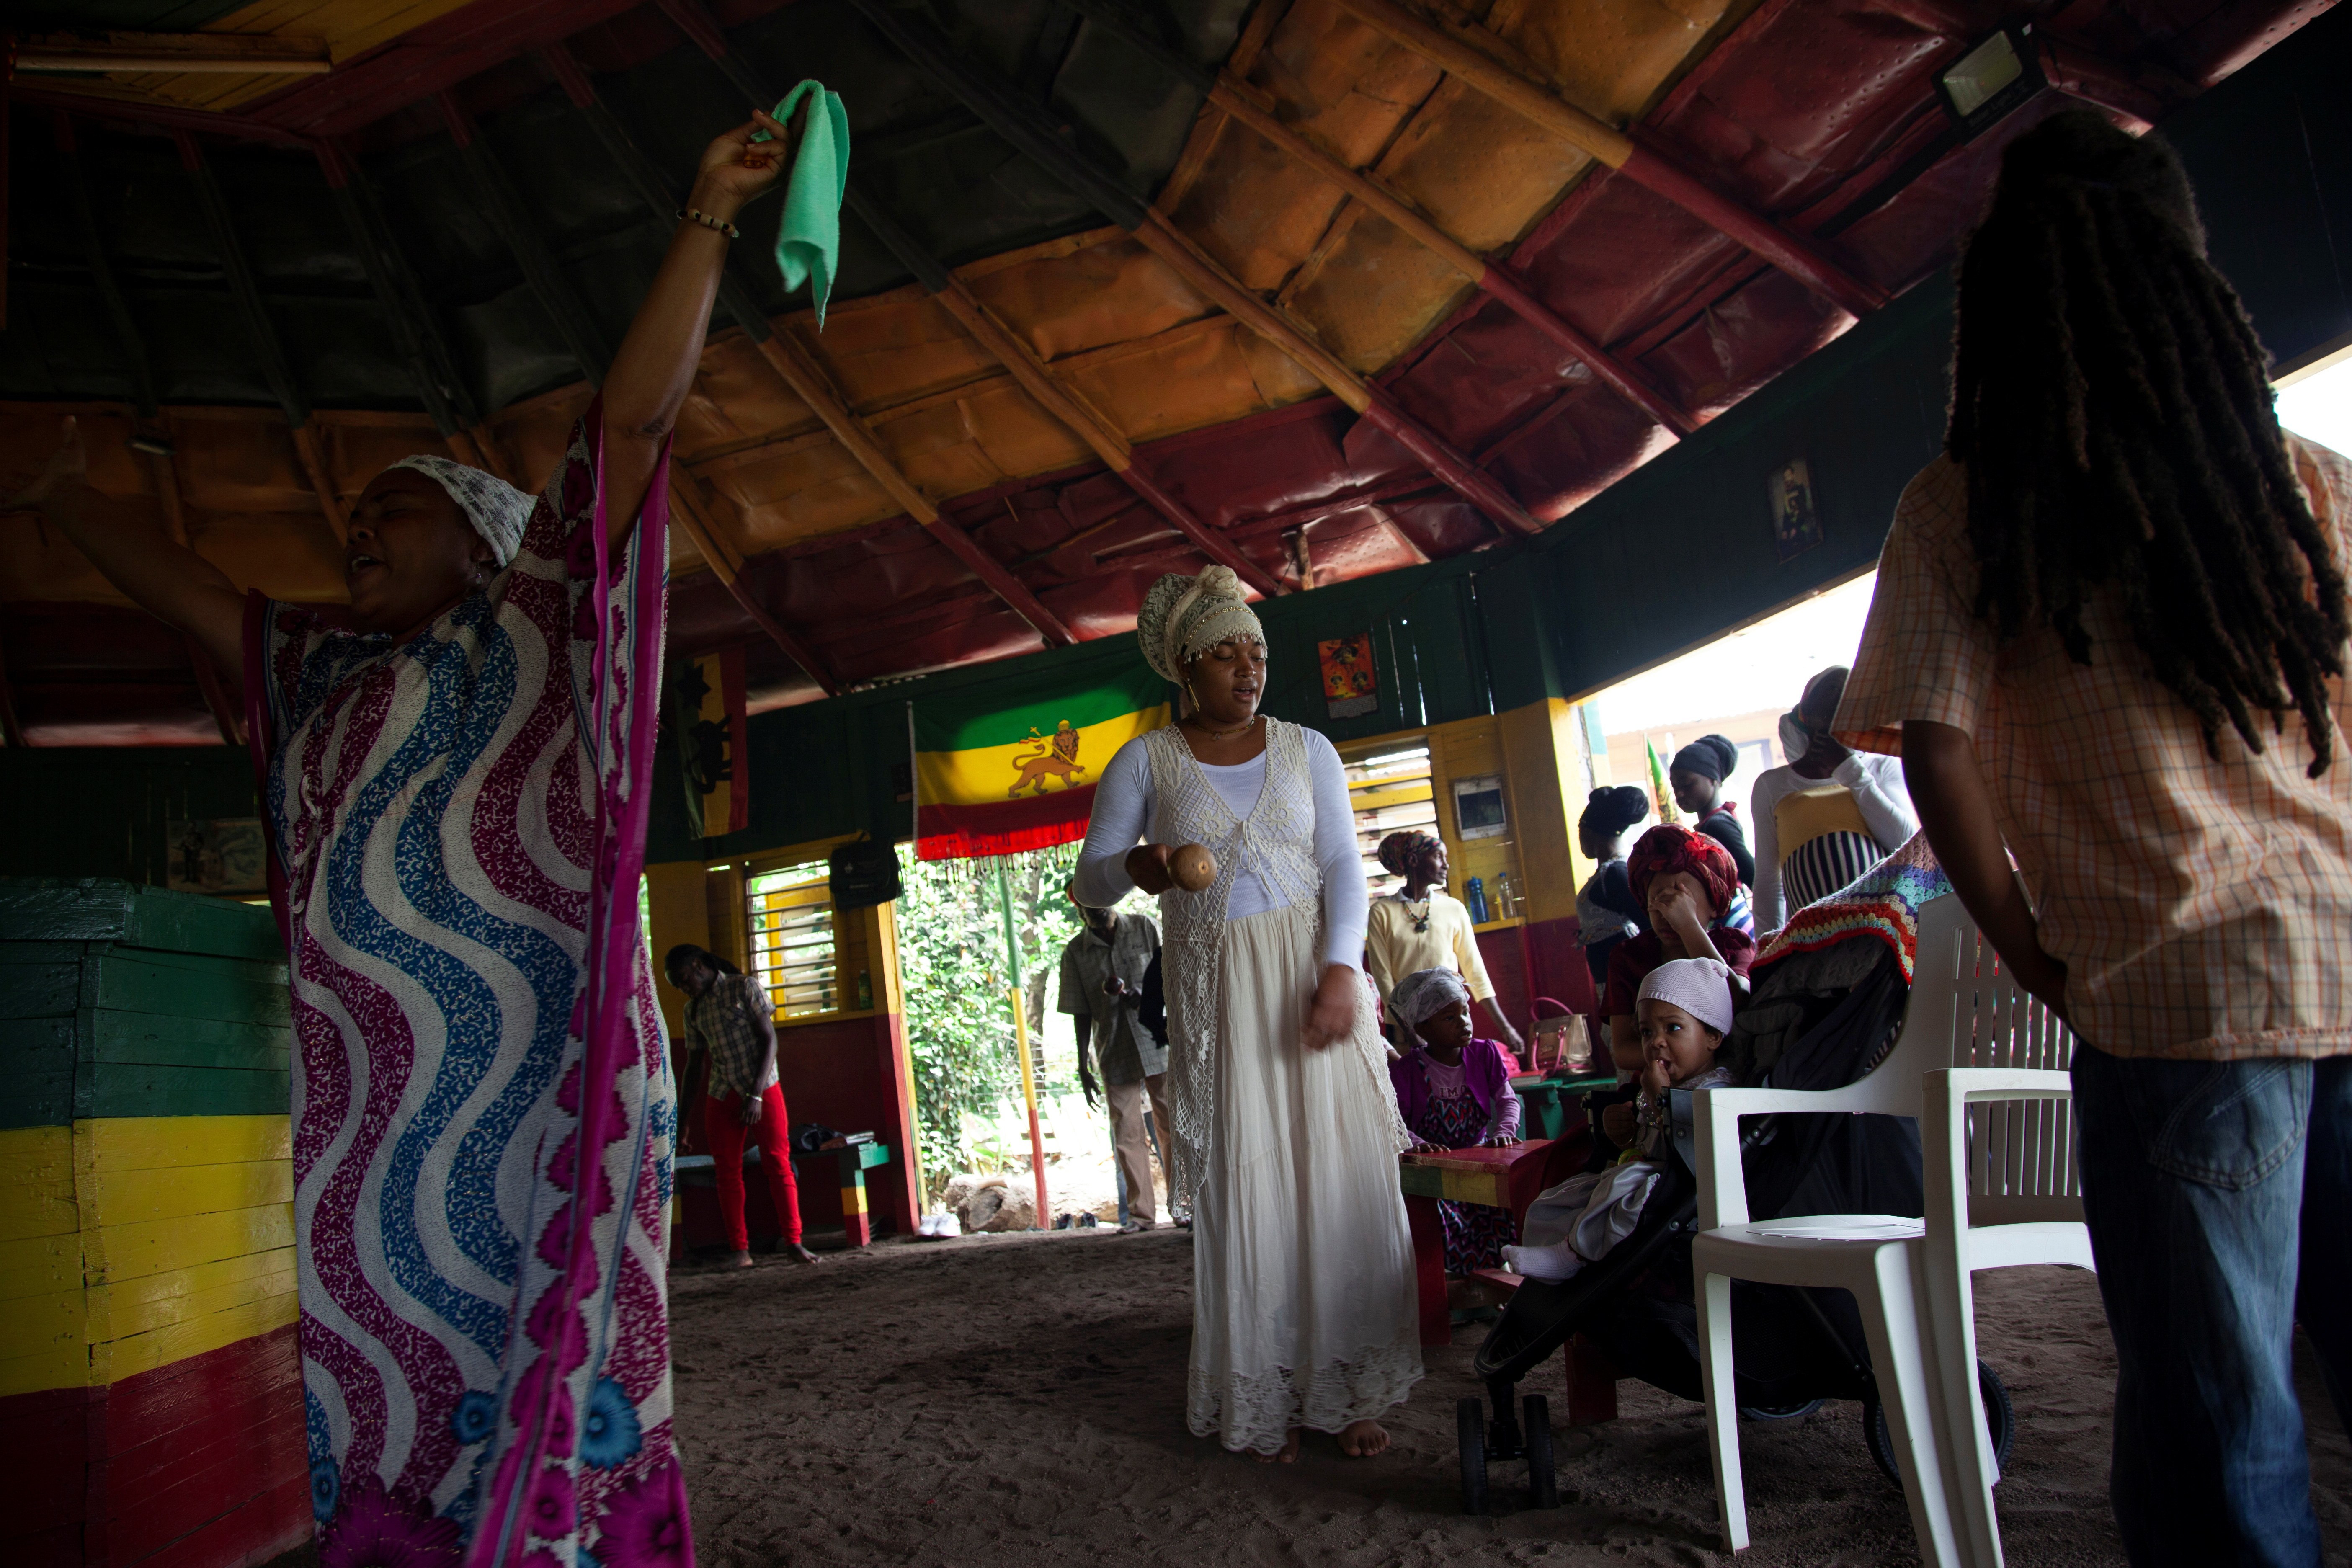 Treesha Bailey (L) and Tasheia Williams chant and dance to celebrate the Sabbath in a ceremony known as nyabinghi, at the temple of The School of Vision, a Rastafari farming community in the Blue Mountains, near Kingston, Jamaica, on June 19, 2021.   REUTERS/Ina Sotirova